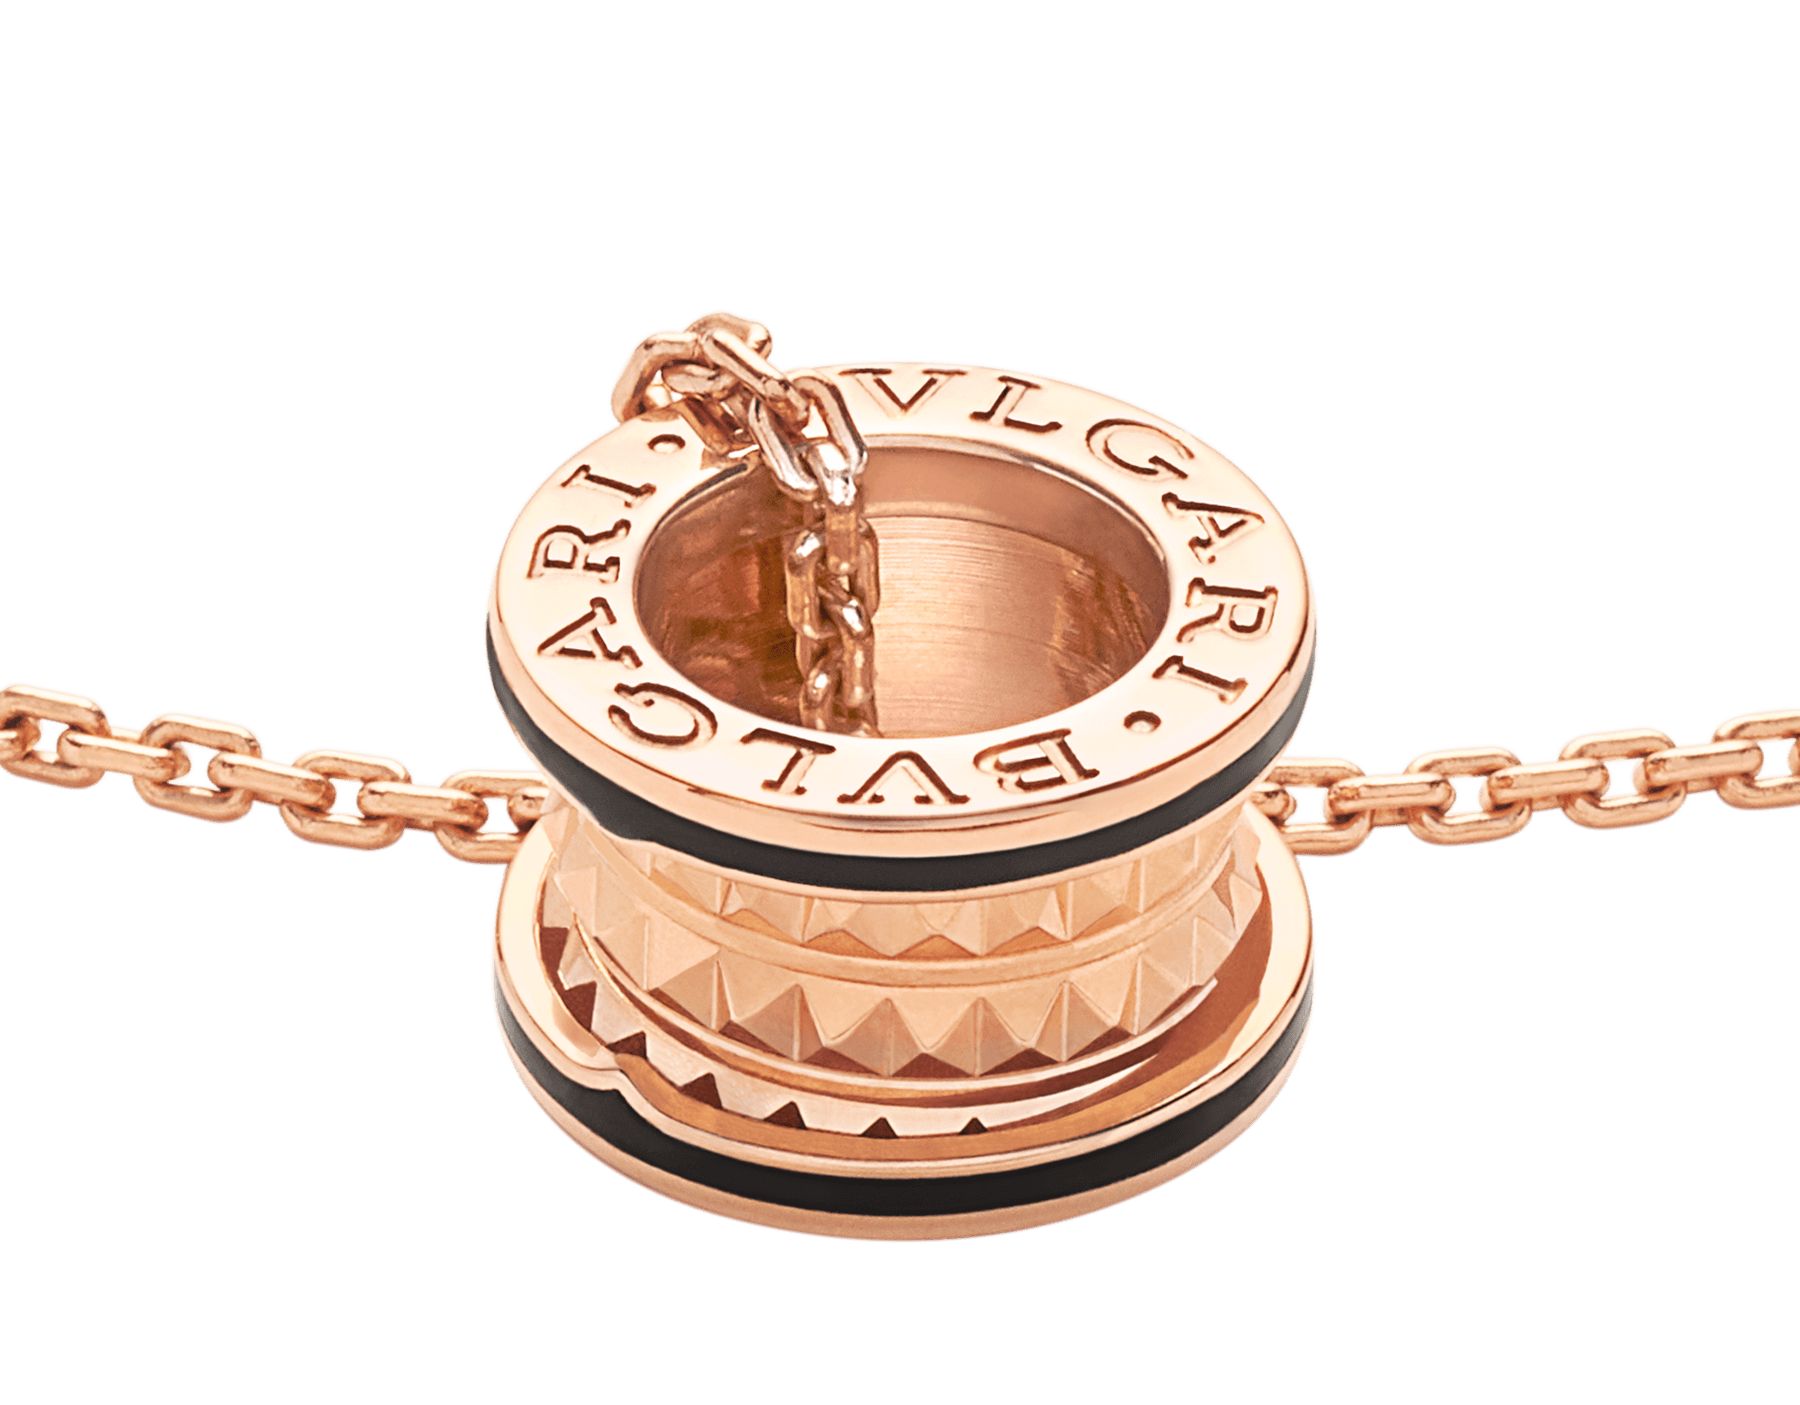 B.zero1 Rock necklace with 18 kt rose gold pendant with studded spiral, black ceramic inserts on the edges and 18 kt rose gold chain 358054 image 3